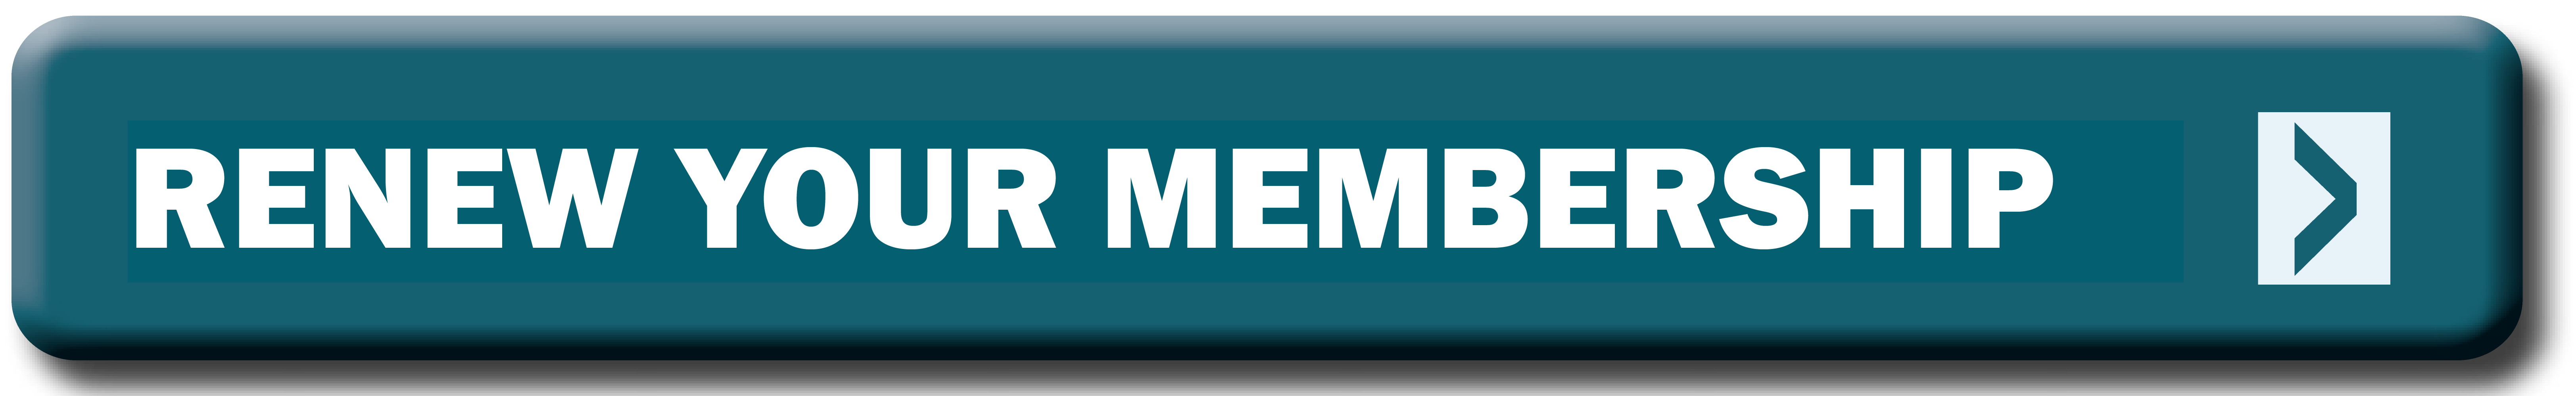 RENEW-YOUR-MEMBERSHIP-BUTTON